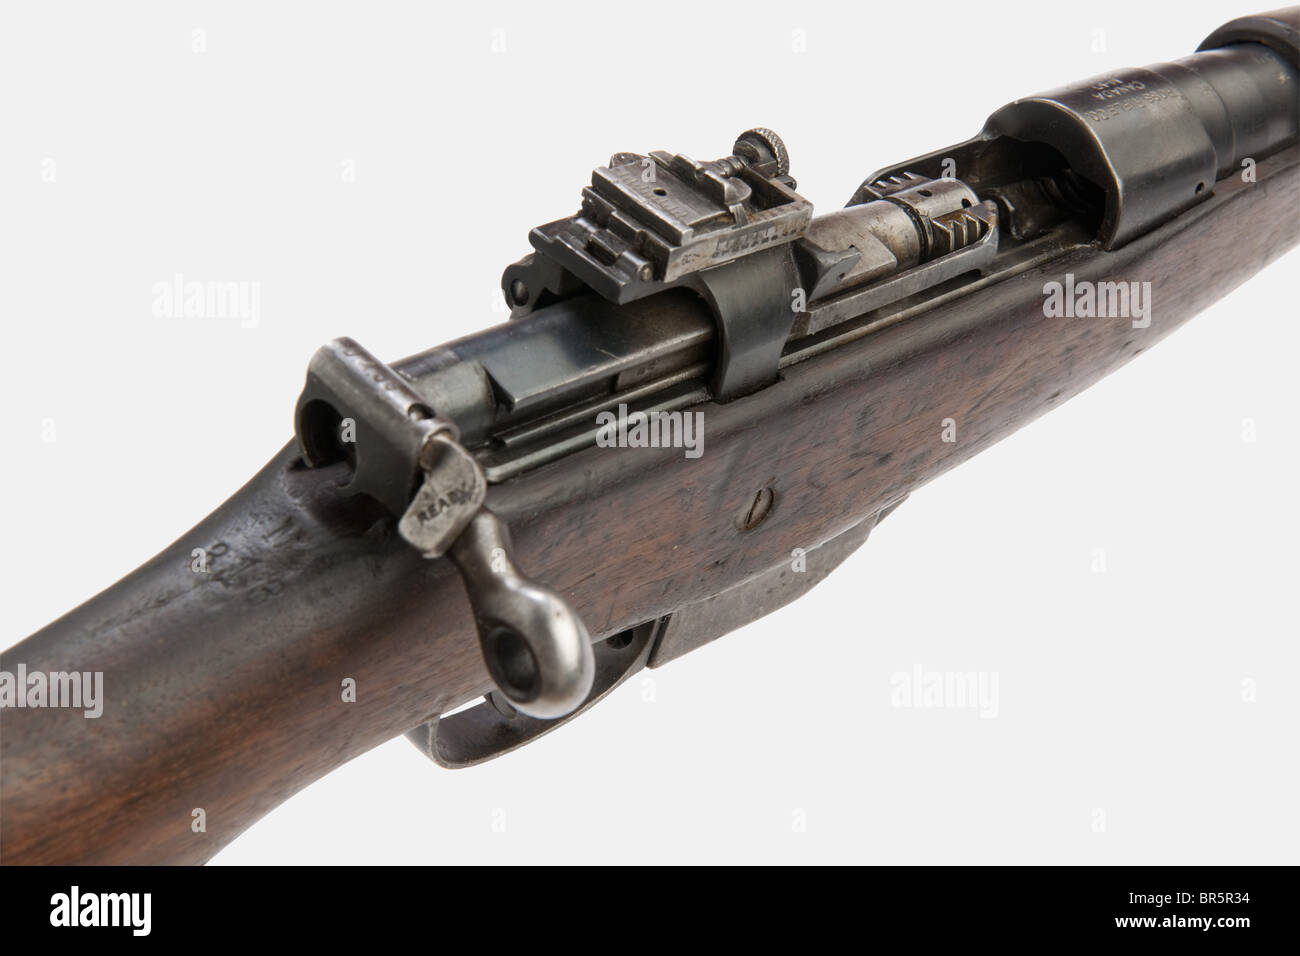 Serial Number Weapon Stock Photos & Serial Number Weapon Stock